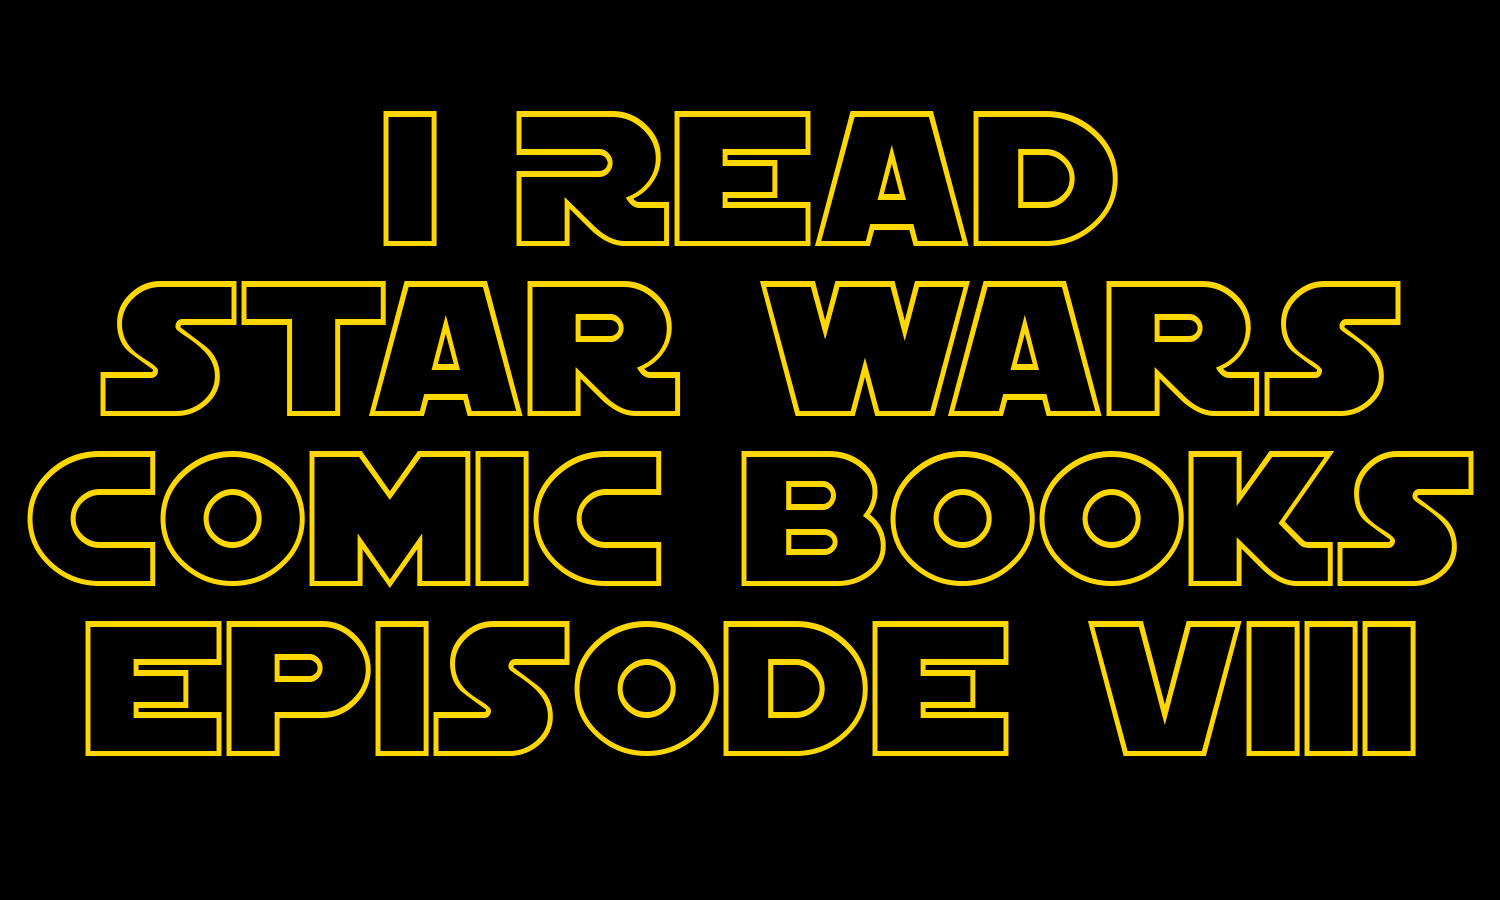 I Read Star Wars Comic Books Episode VIII | Age of Resistance